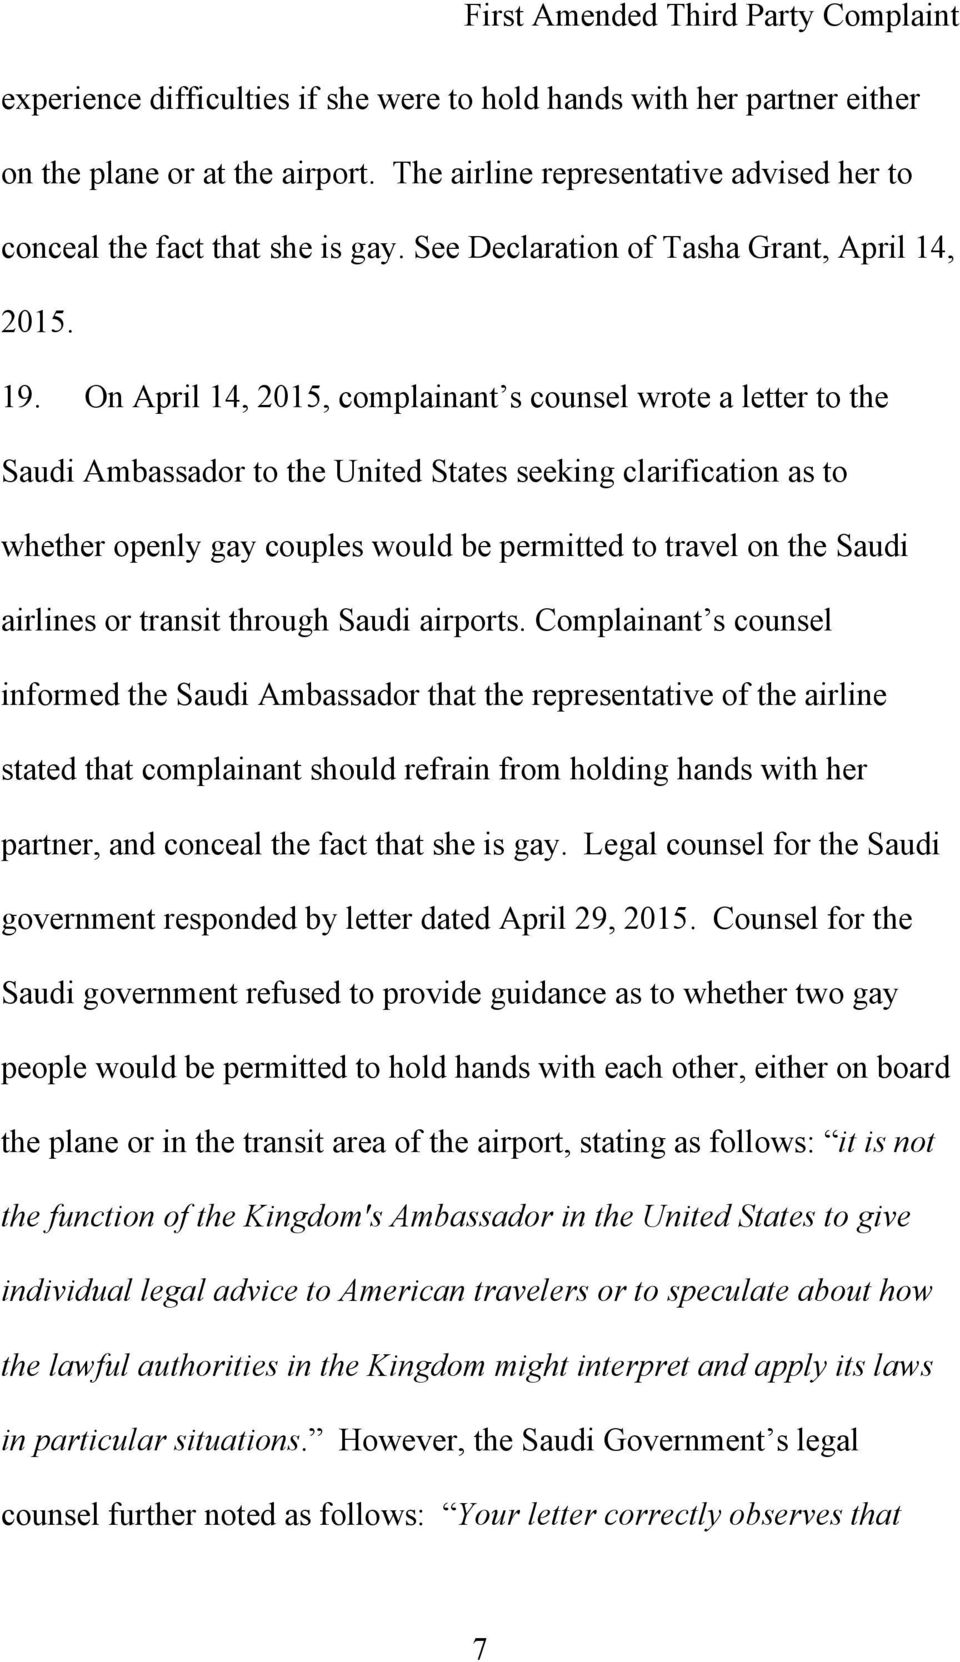 On April 14, 2015, complainant s counsel wrote a letter to the Saudi Ambassador to the United States seeking clarification as to whether openly gay couples would be permitted to travel on the Saudi